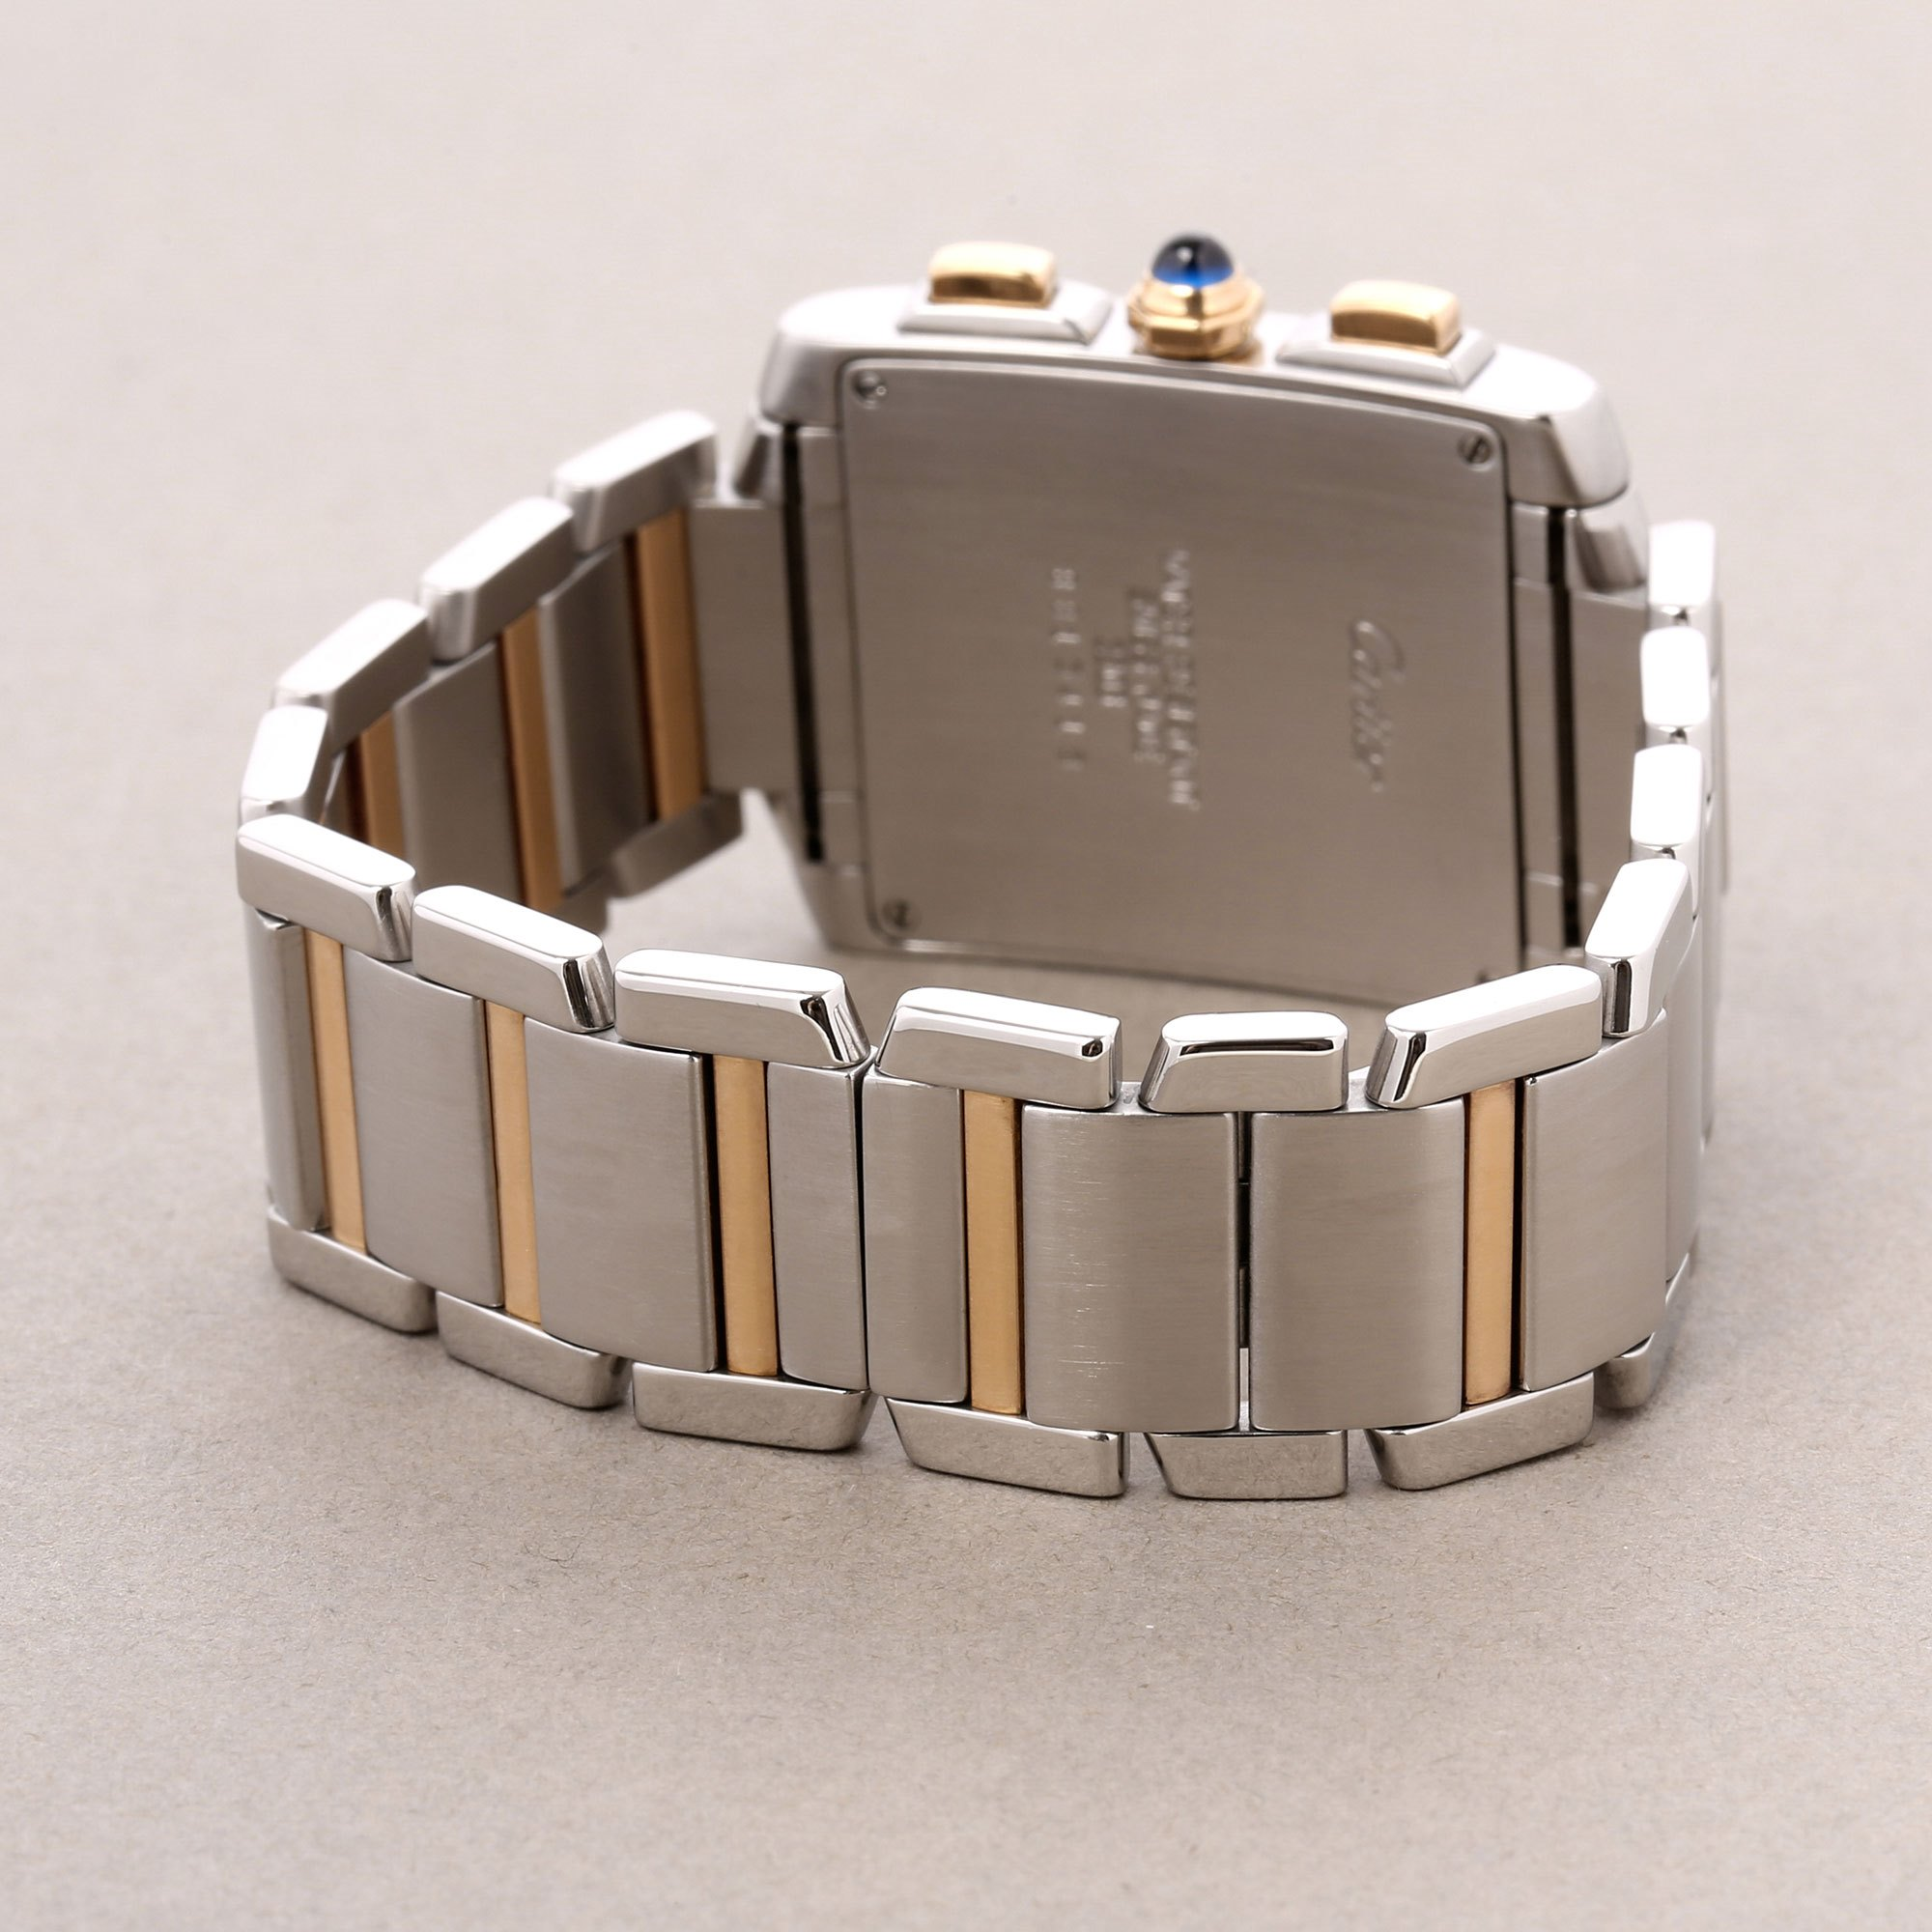 Cartier Tank Francaise Chronoflex 18K Roestvrij Staal & Geel Goud W51004Q4 or 2303